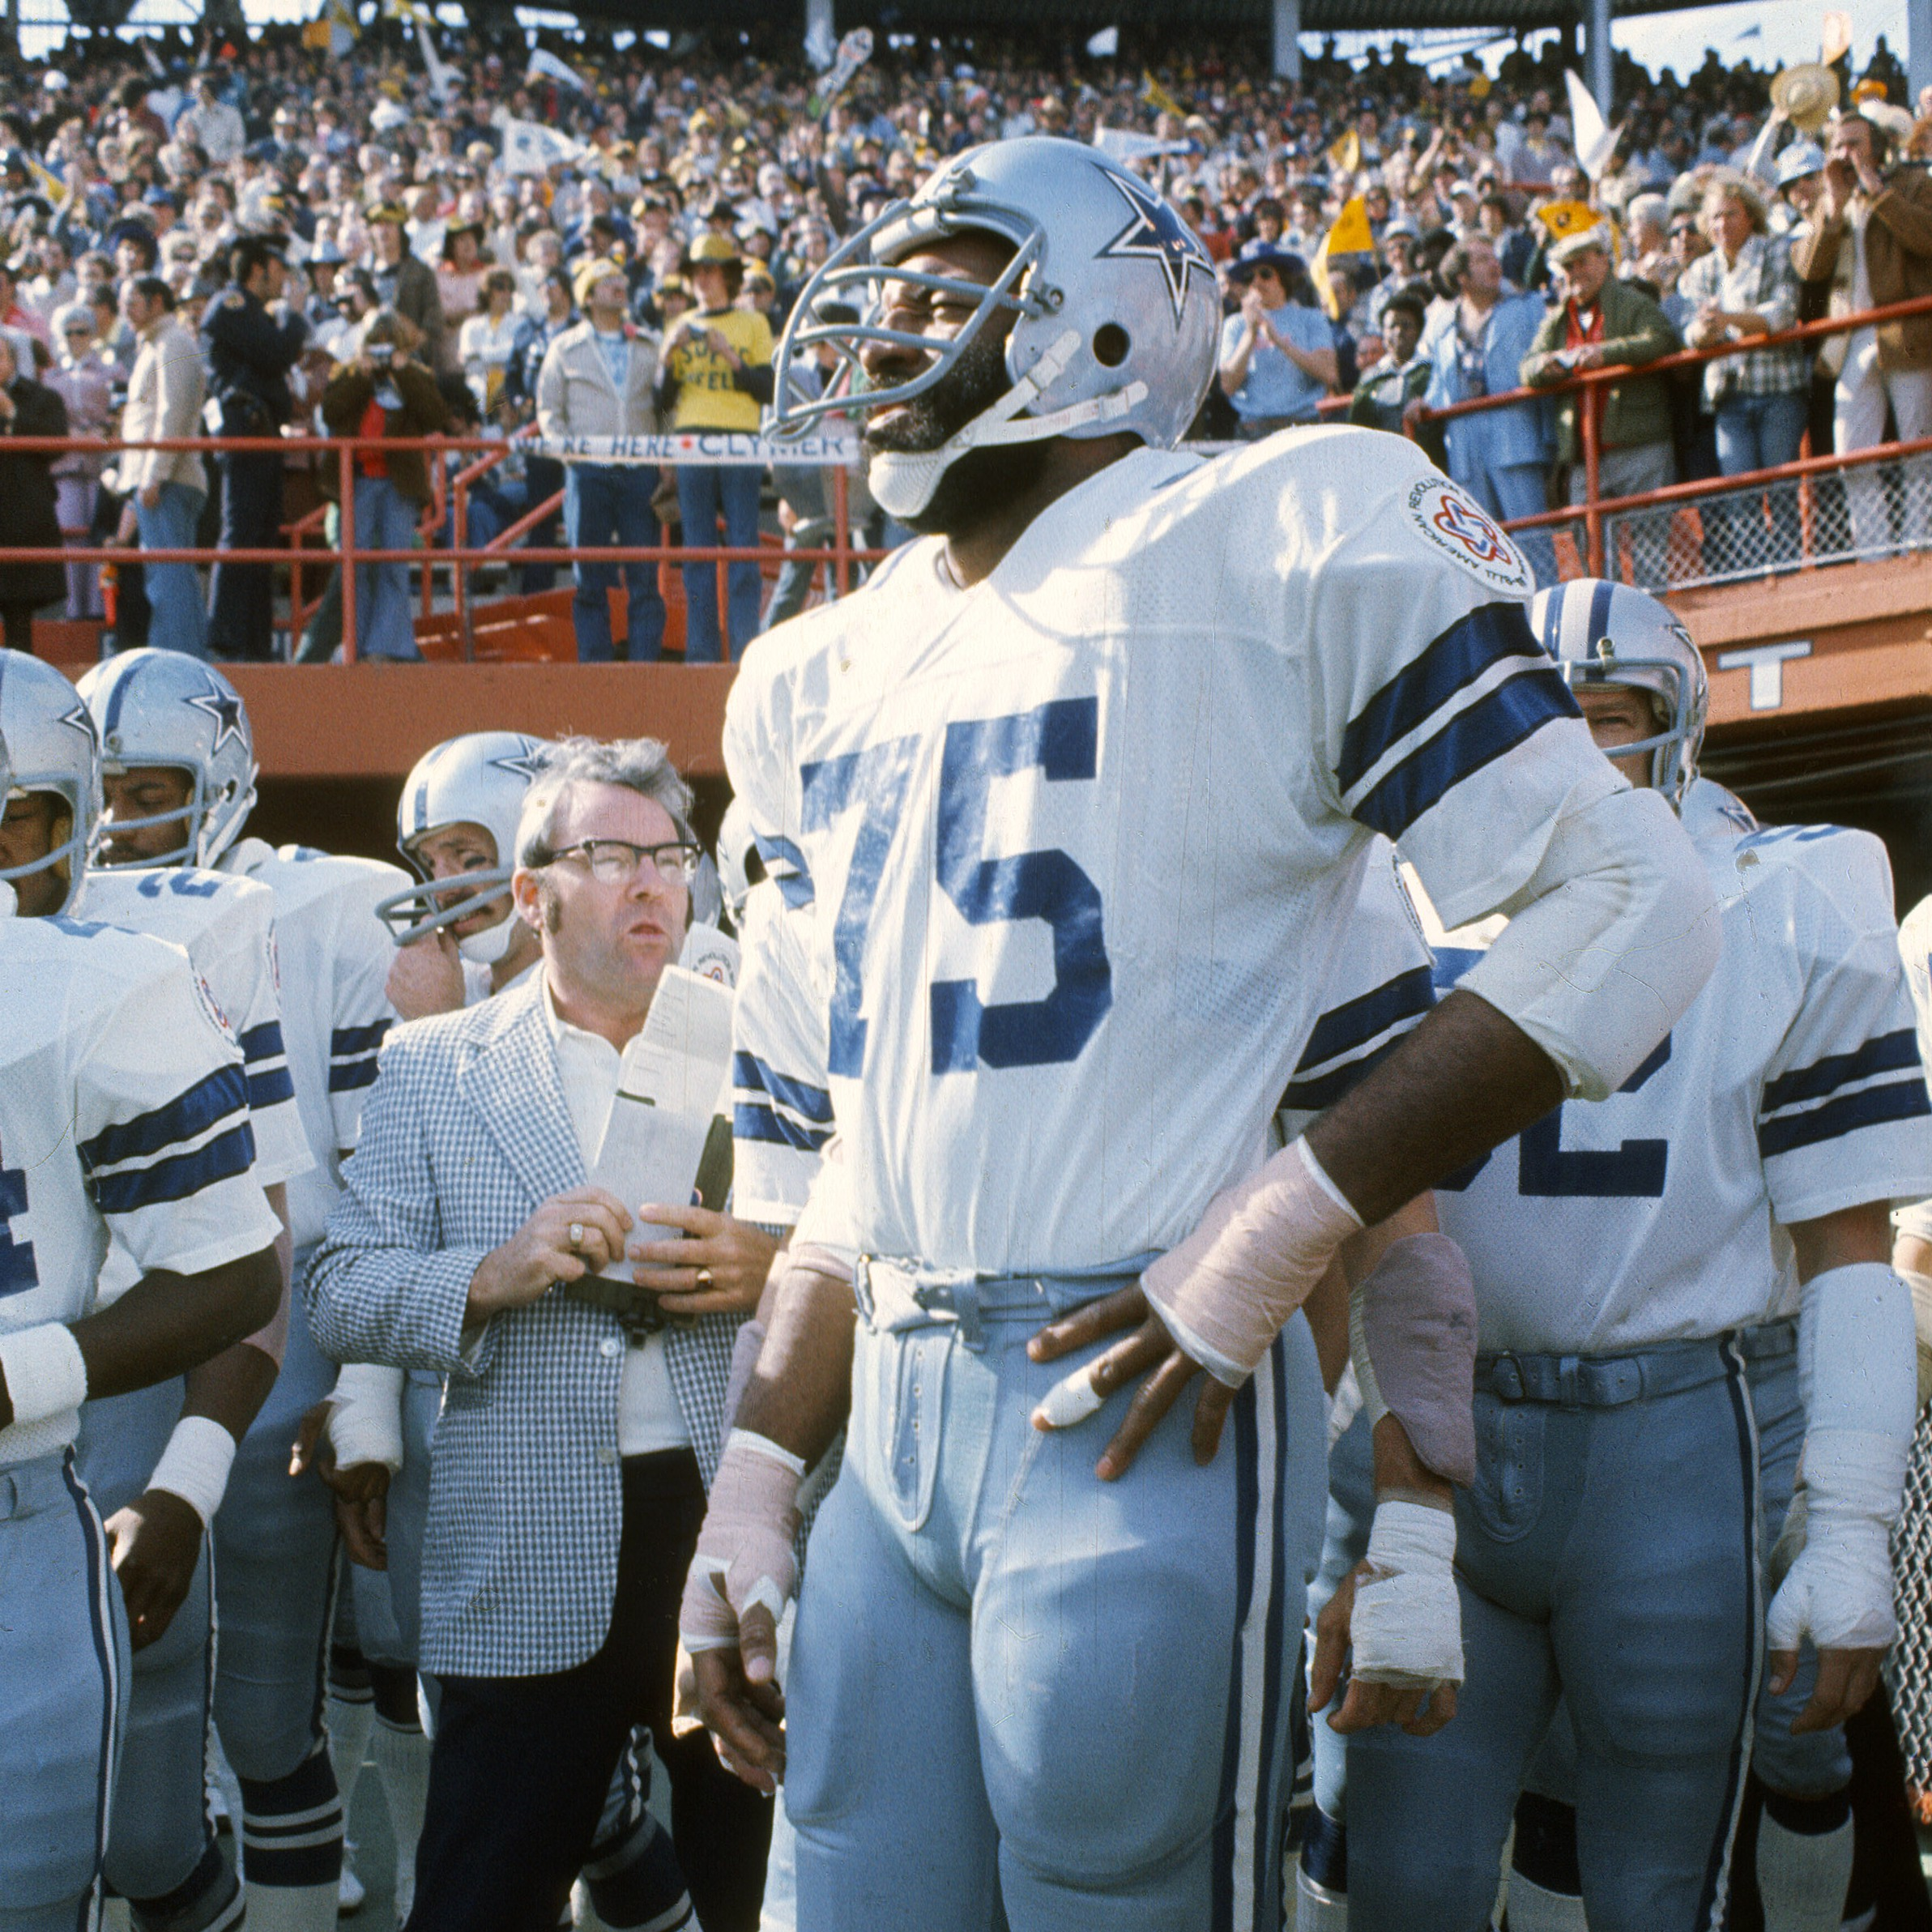 Nike authentic jerseys - 75 Belongs To Jethro Pugh In Cowboys History | Inside The Star